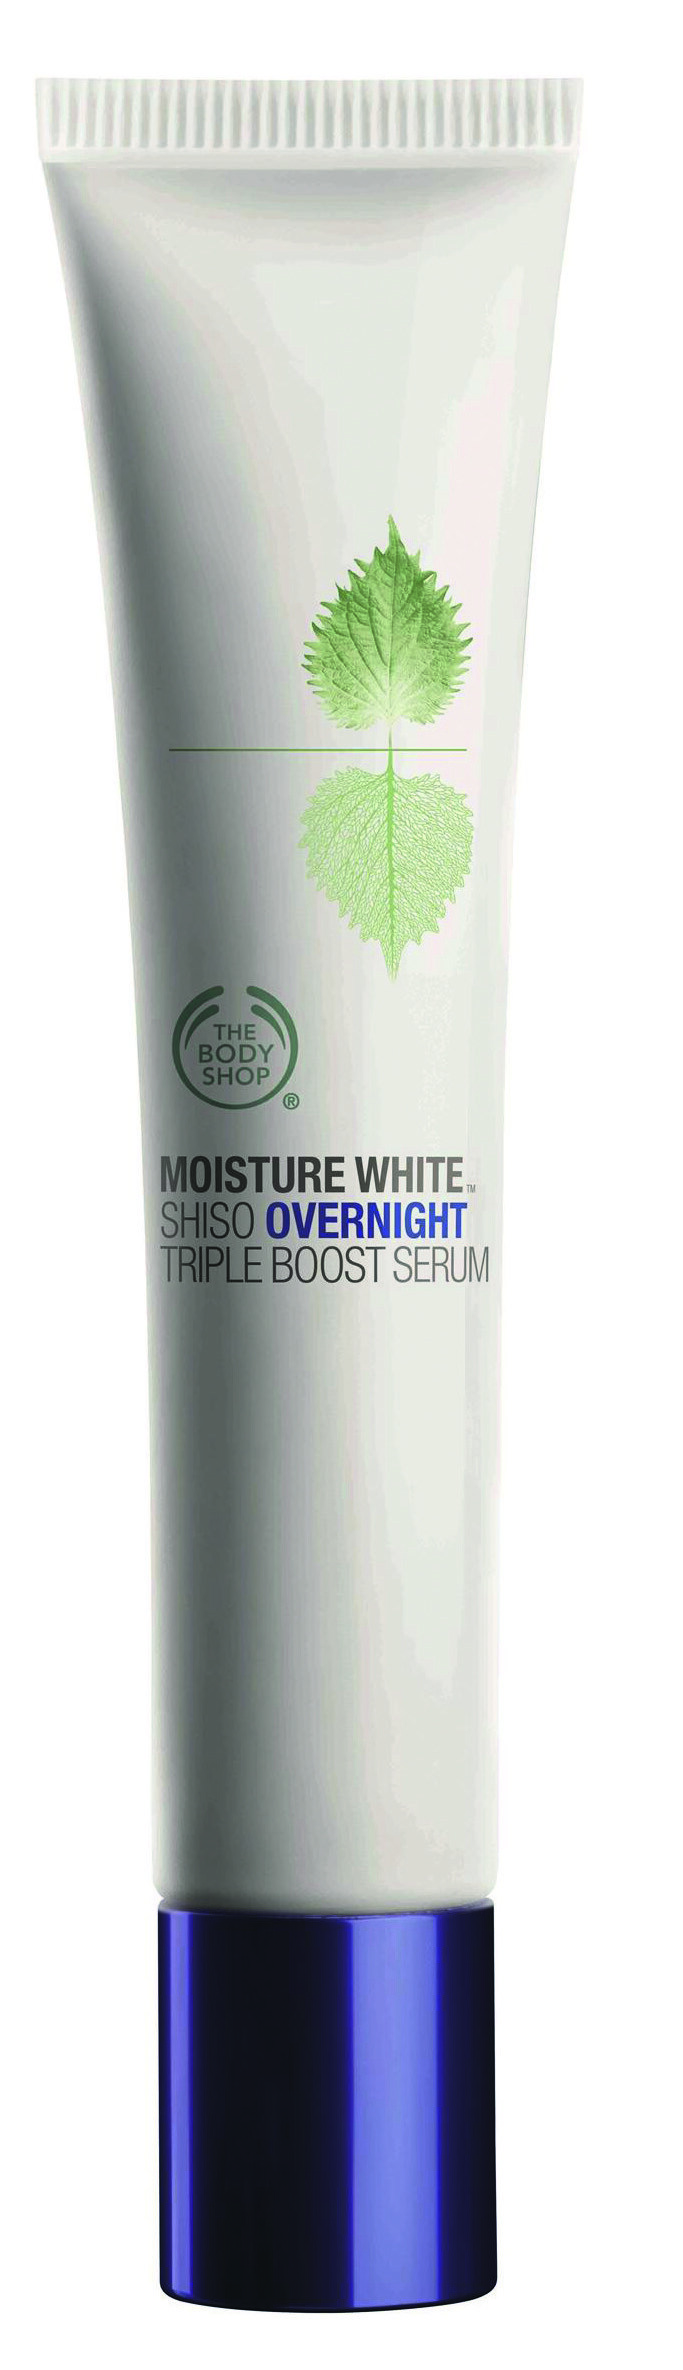 The Body Shop Moisture White™ Shiso Overnight Triple Boost Serum